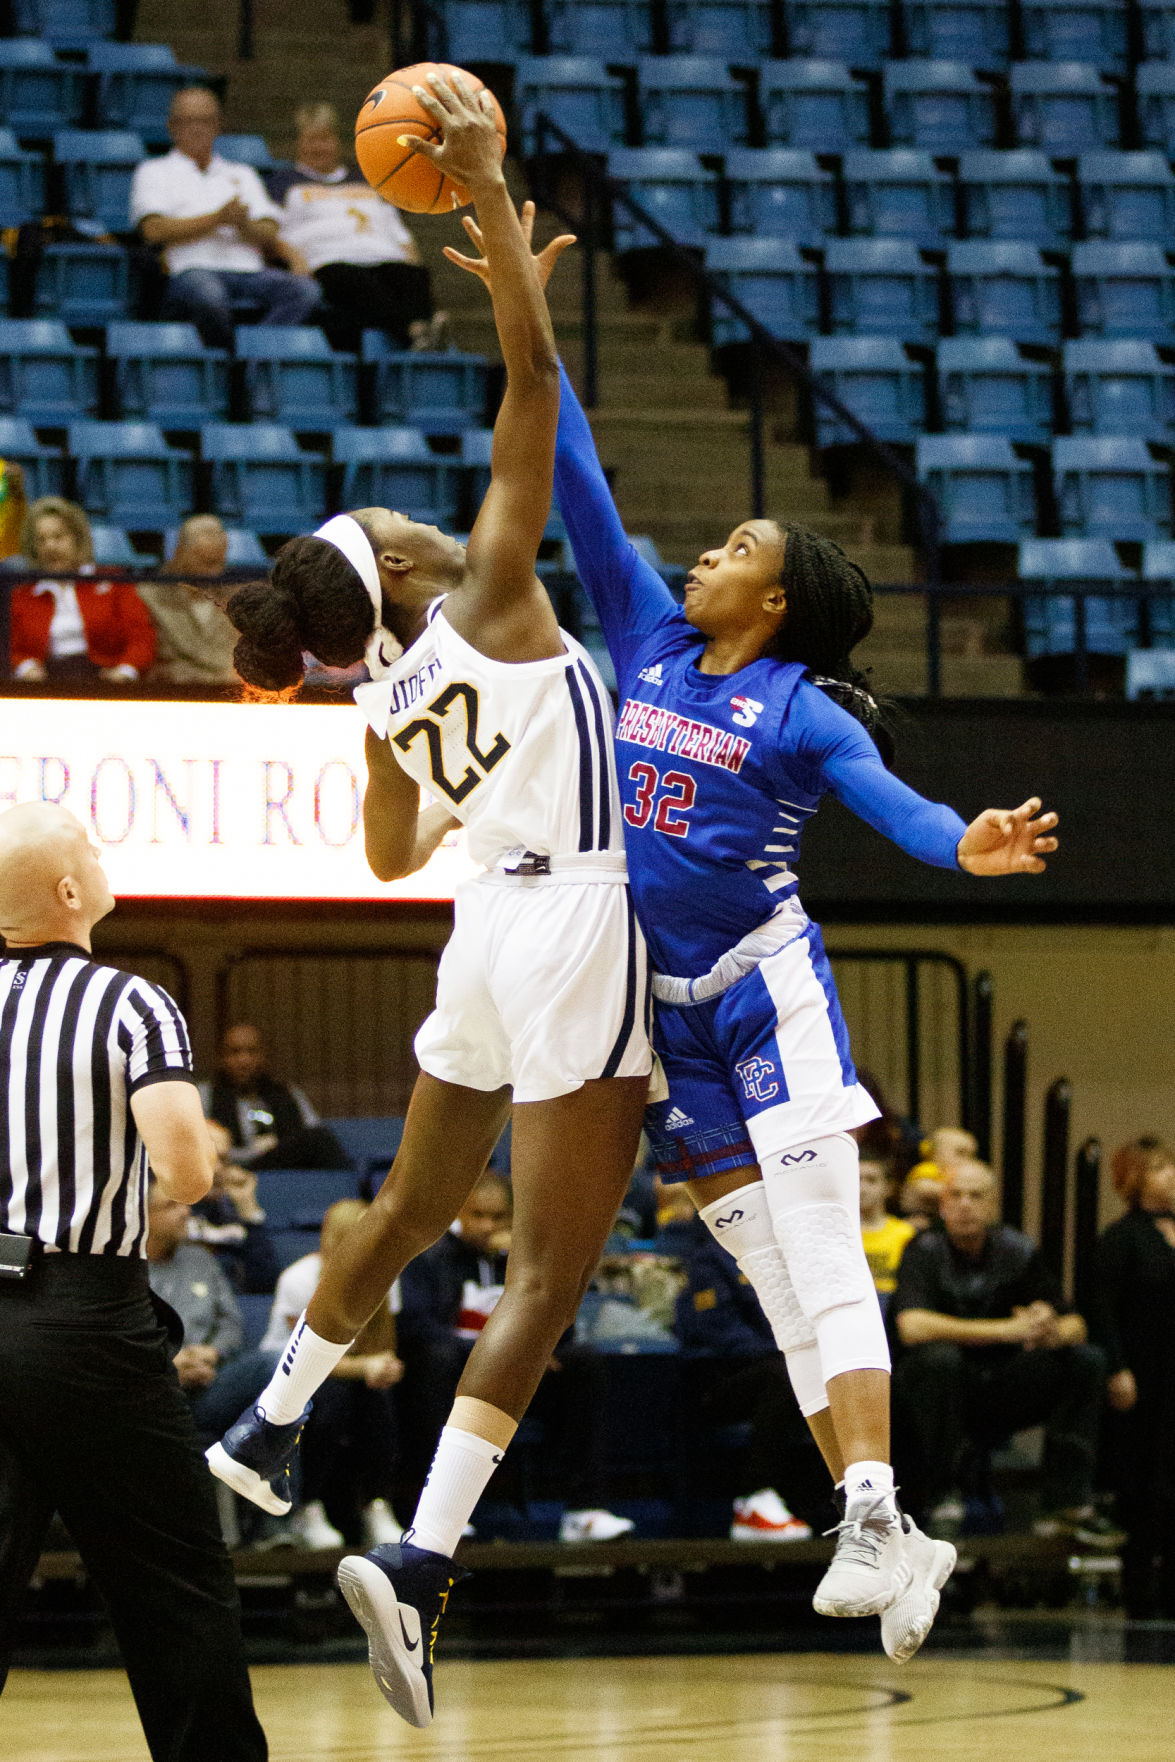 West Virginia's Blessing Ejiofor and Presbyterian's jade Compton reach for the opening tip-off during West Virginia's game against Presbyterian on Nov. 10, 2019 at the Coliseum.